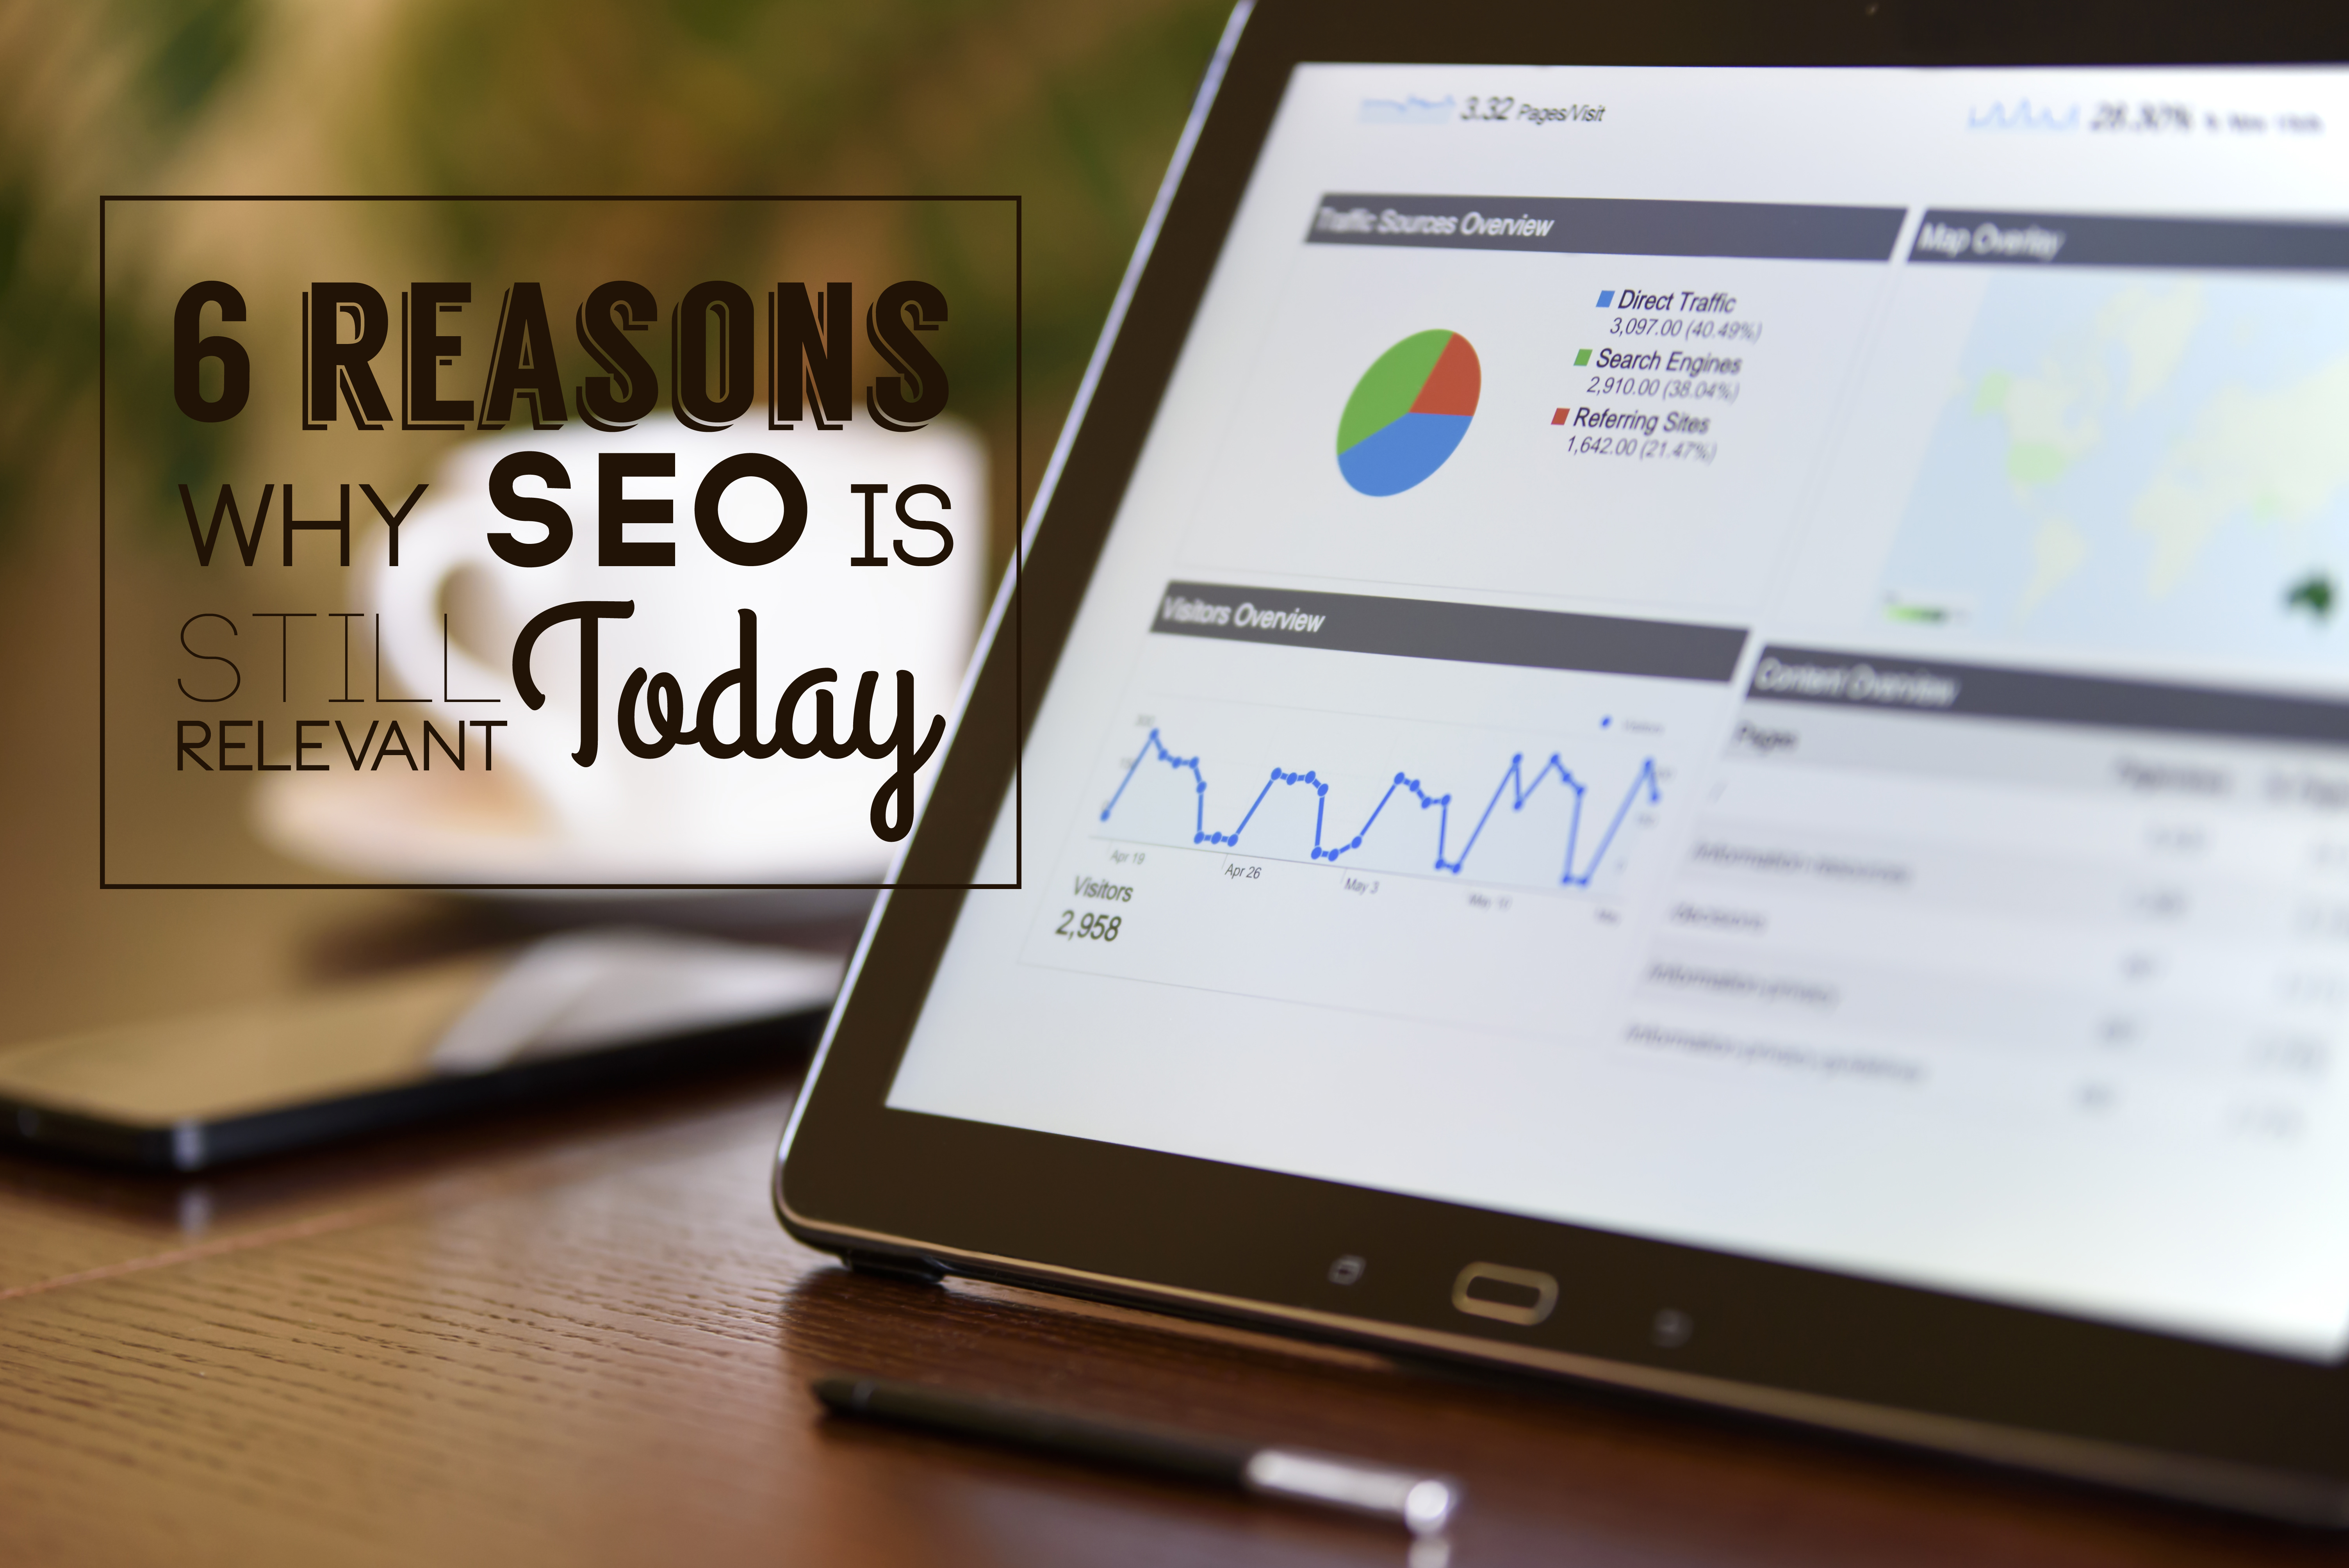 8 Reasons Why SEO is Still Relevant Today